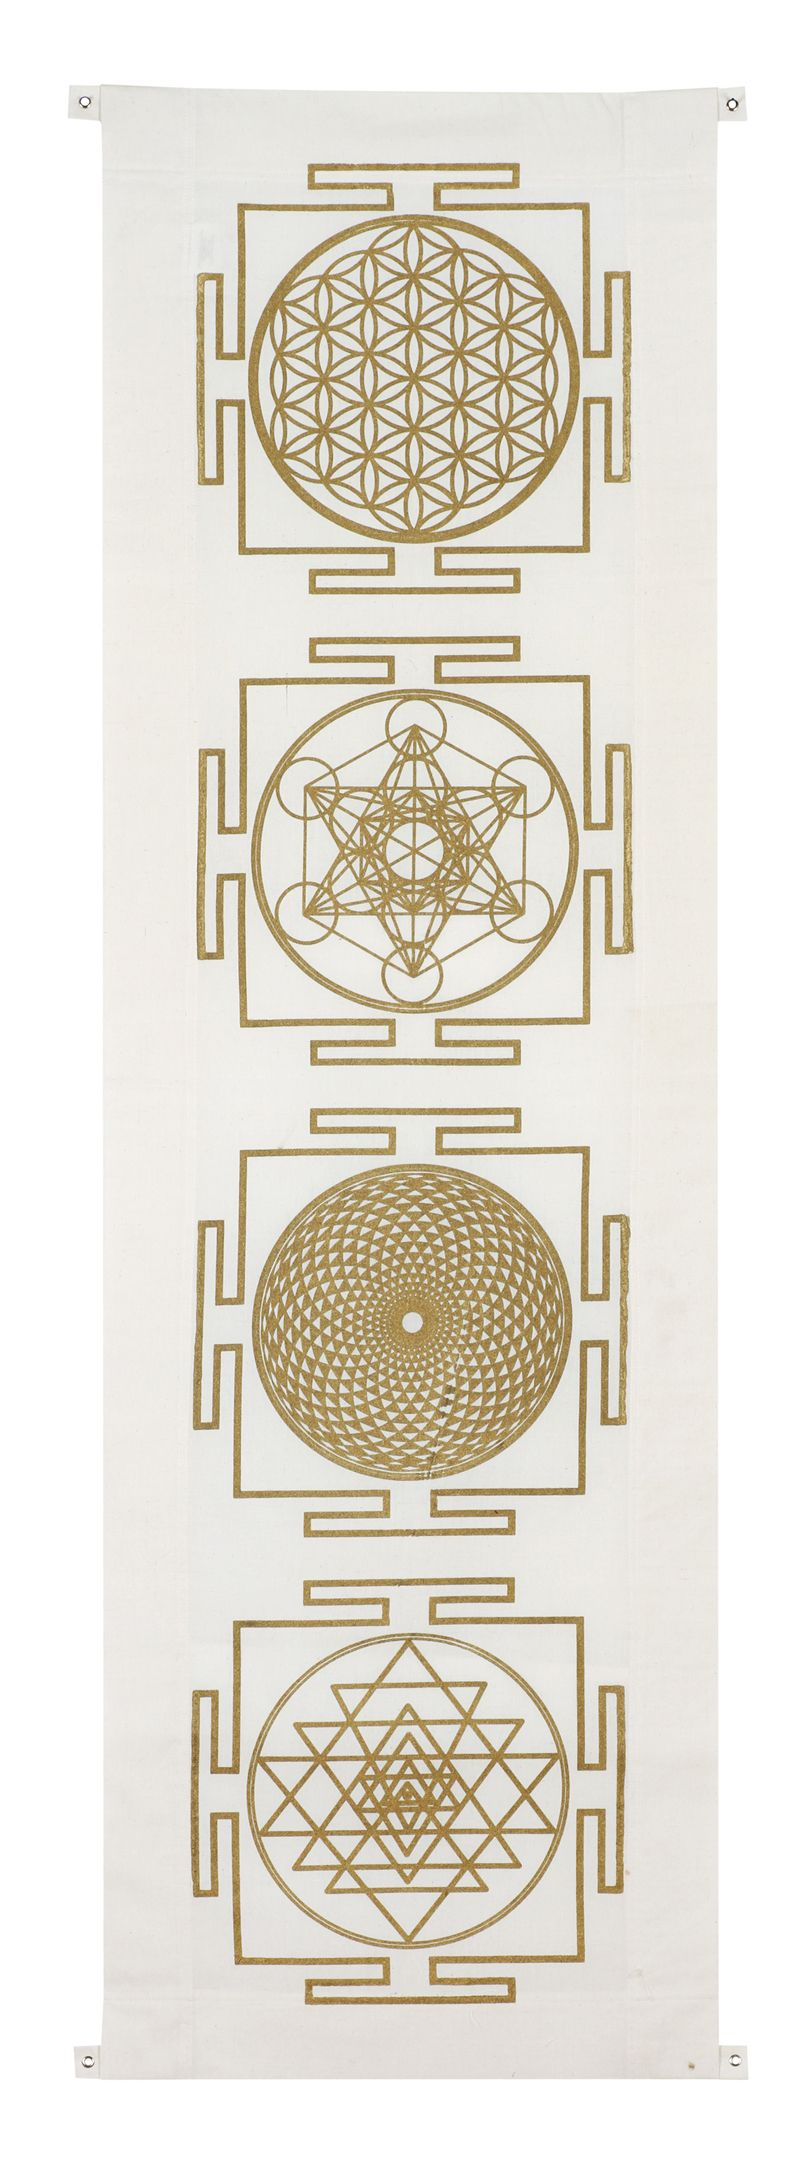 Banners sri yantra symbols and cube as the most significant of all the symbols in sacred geometry the flower of life biocorpaavc Image collections